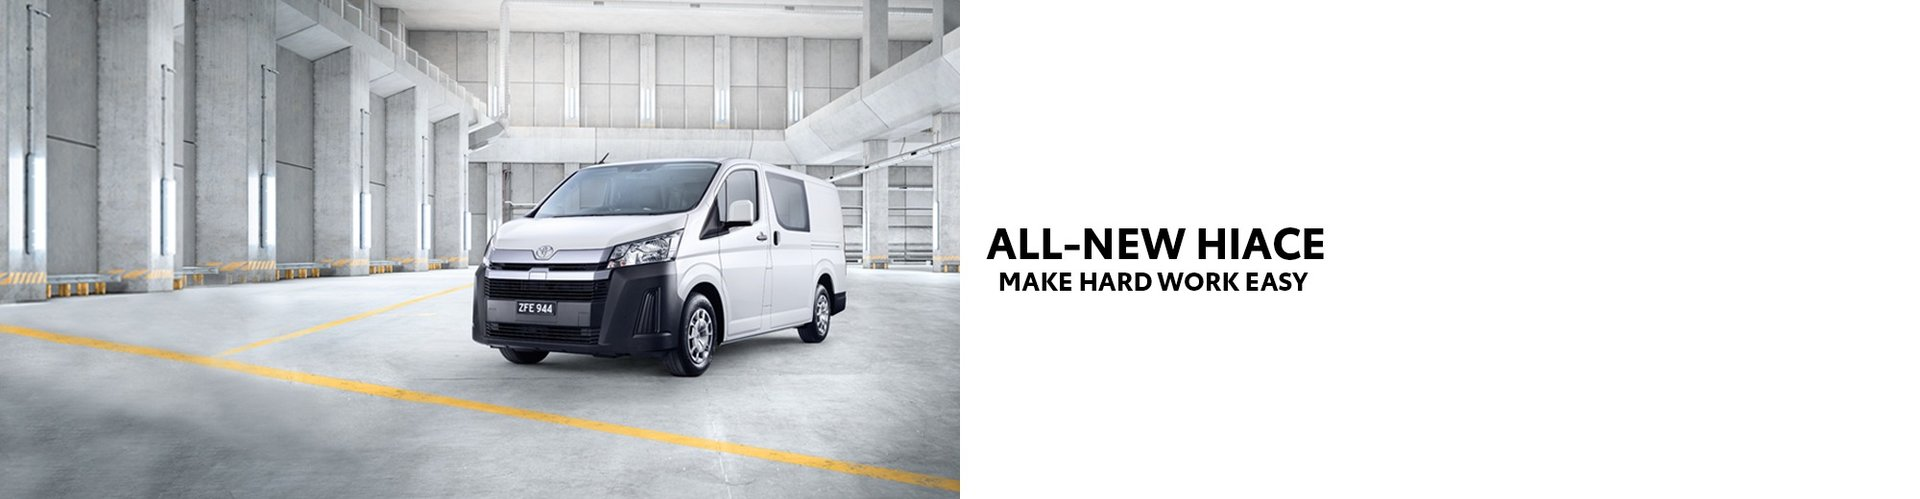 ALL-NEW HIACE HAS JUST ARRIVED